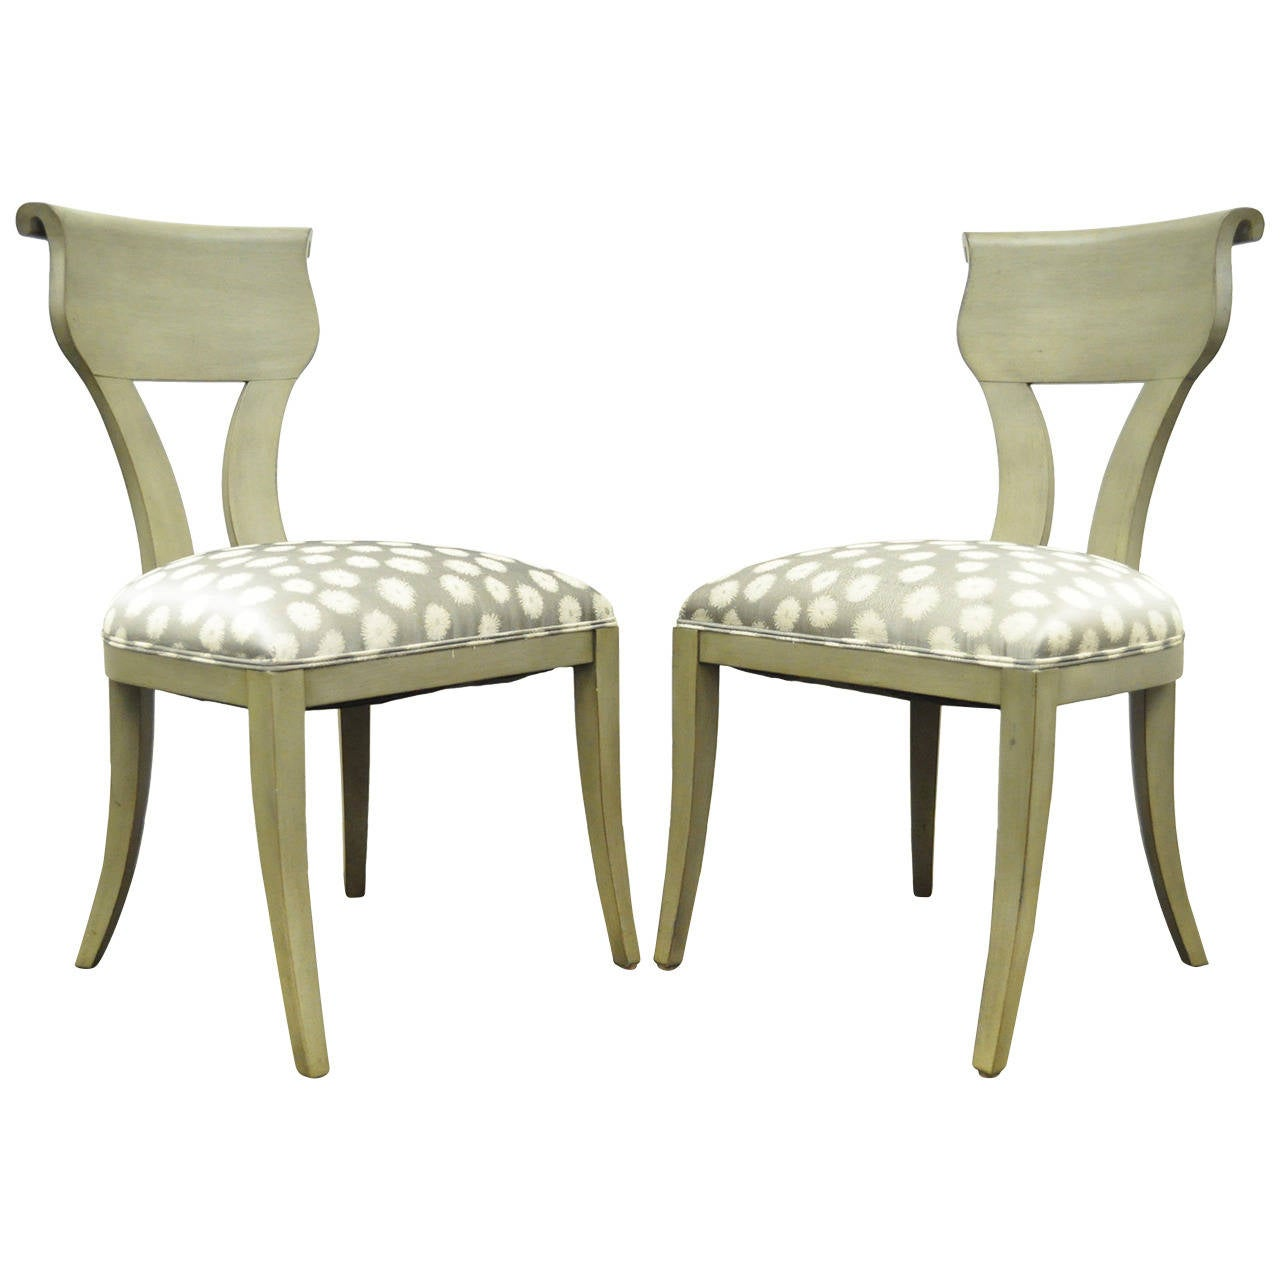 Pair of Scroll-Back Hollywood Regency Neoclassical Style Klismos Side Chairs